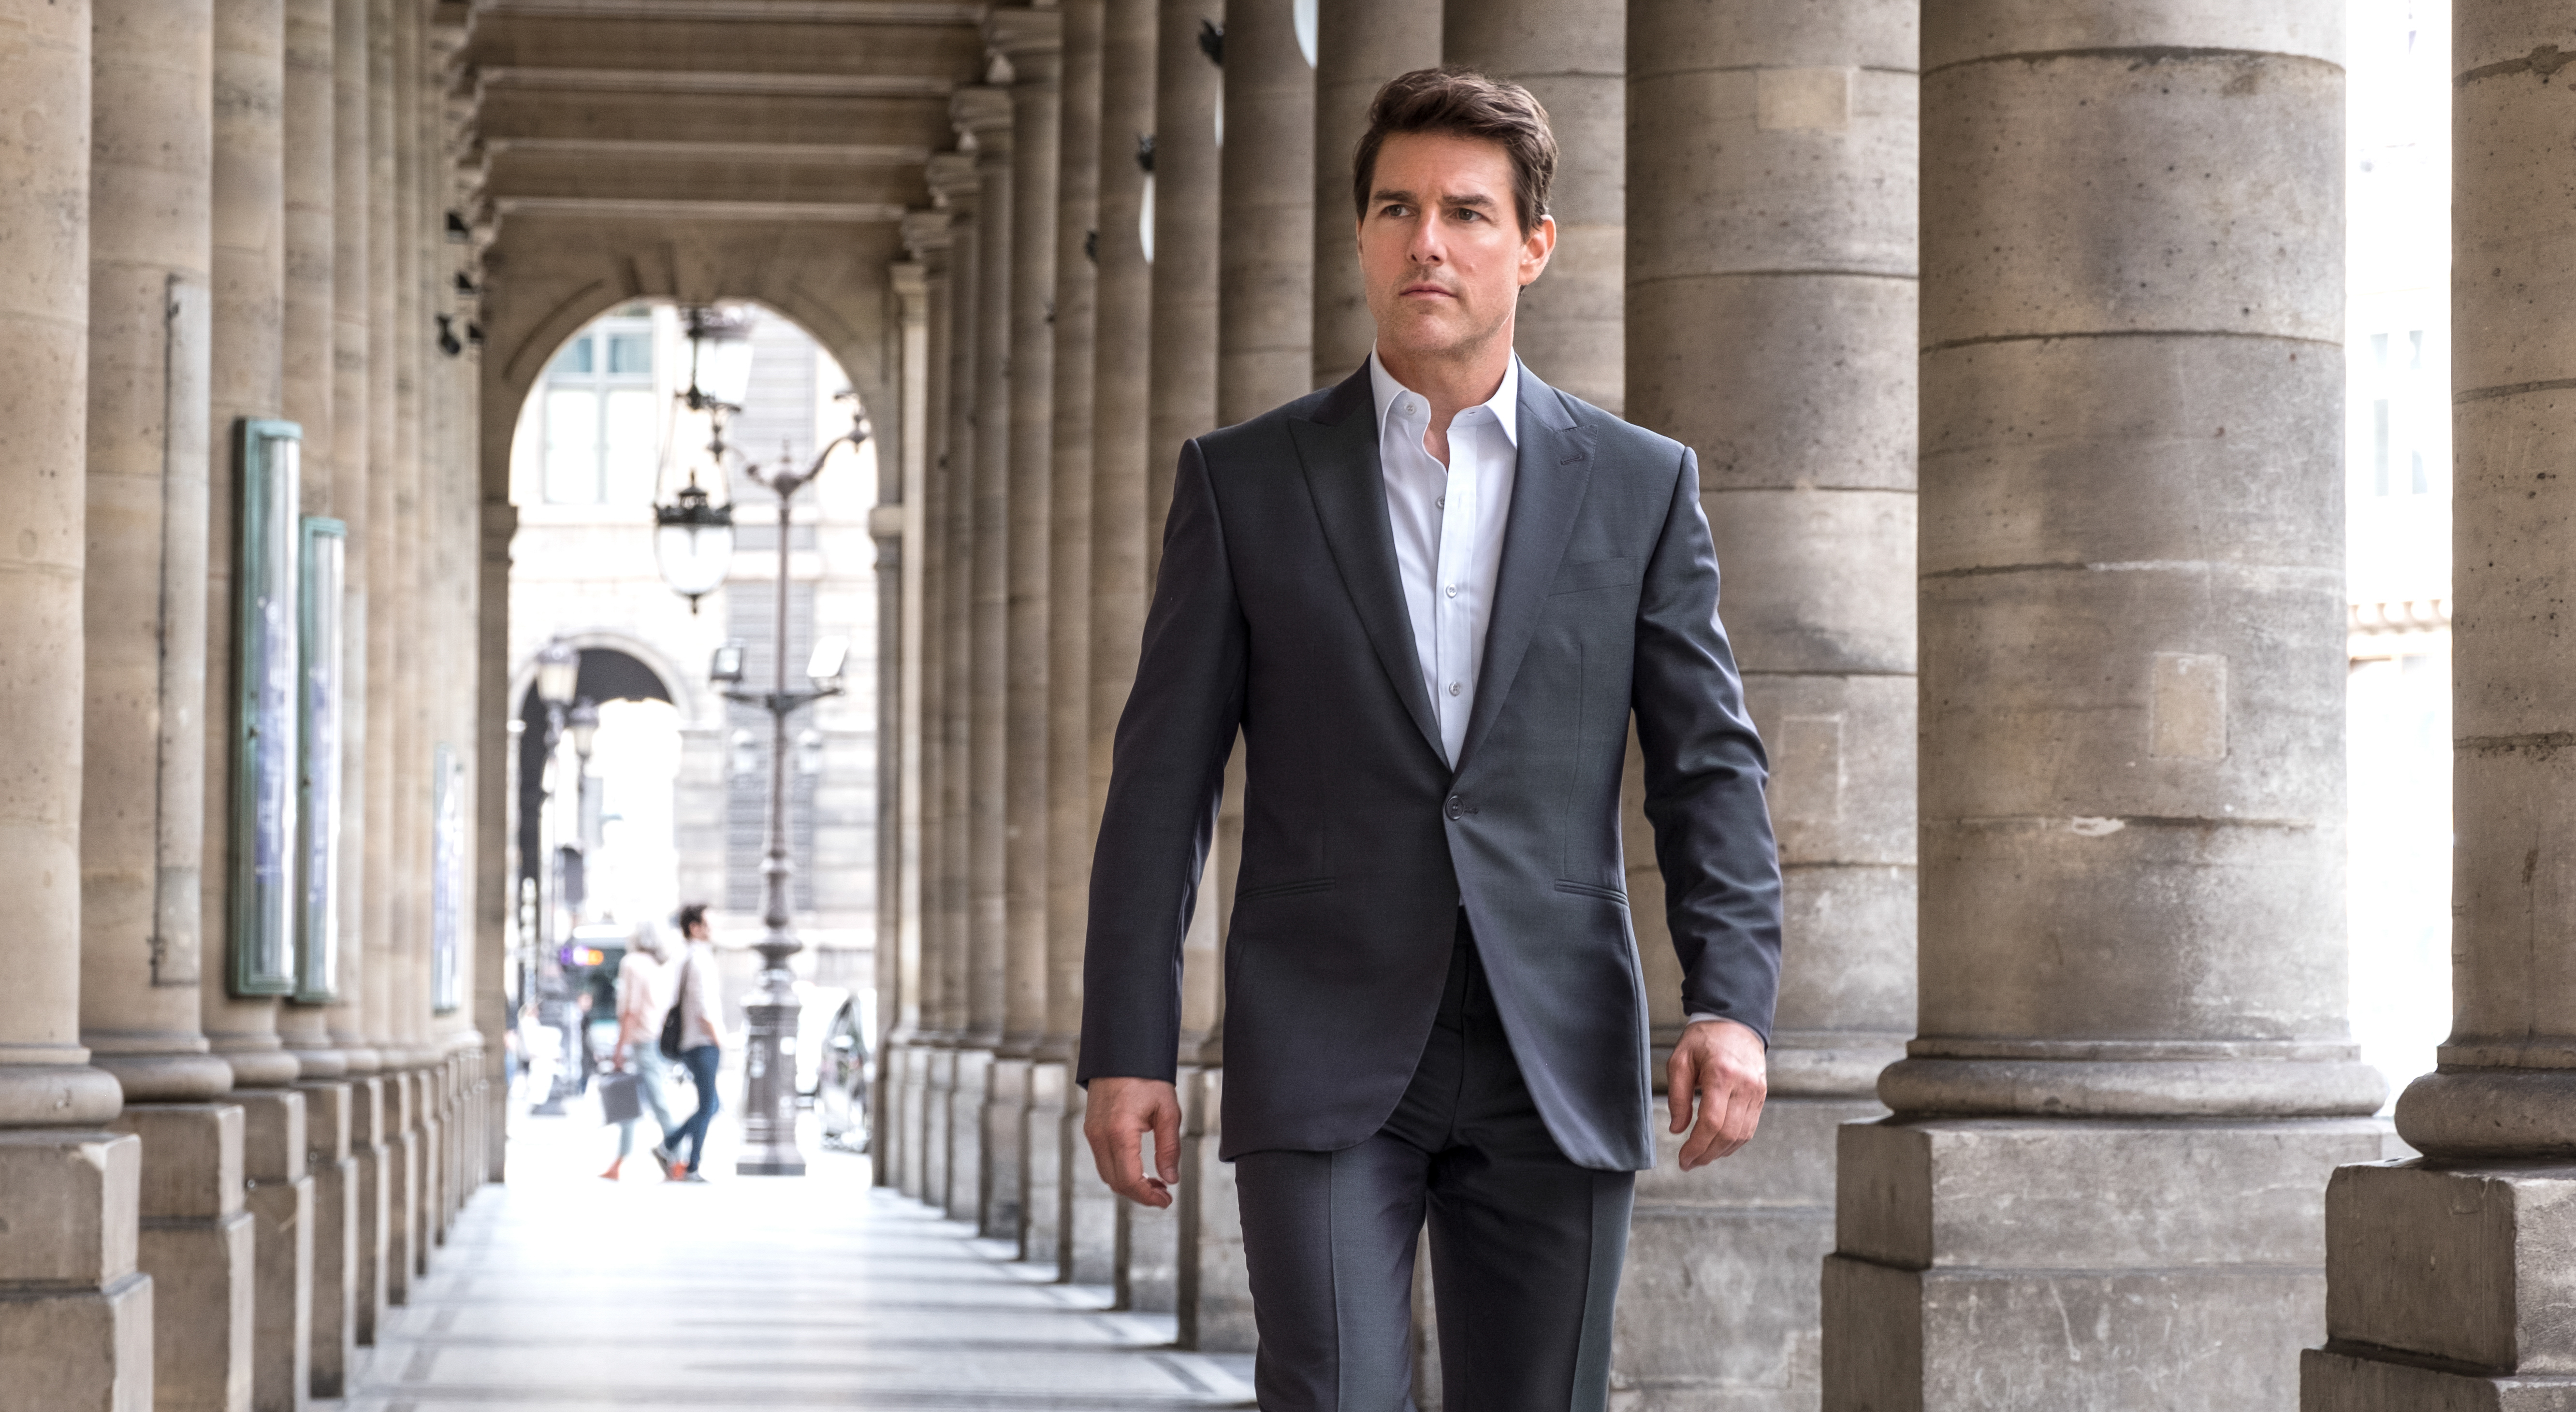 Tom Cruise As Ethan Hunt In Mission Impossible Fallout Movie 2018 Hd Movies 4k Wallpapers Images Backgrounds Photos And Pictures